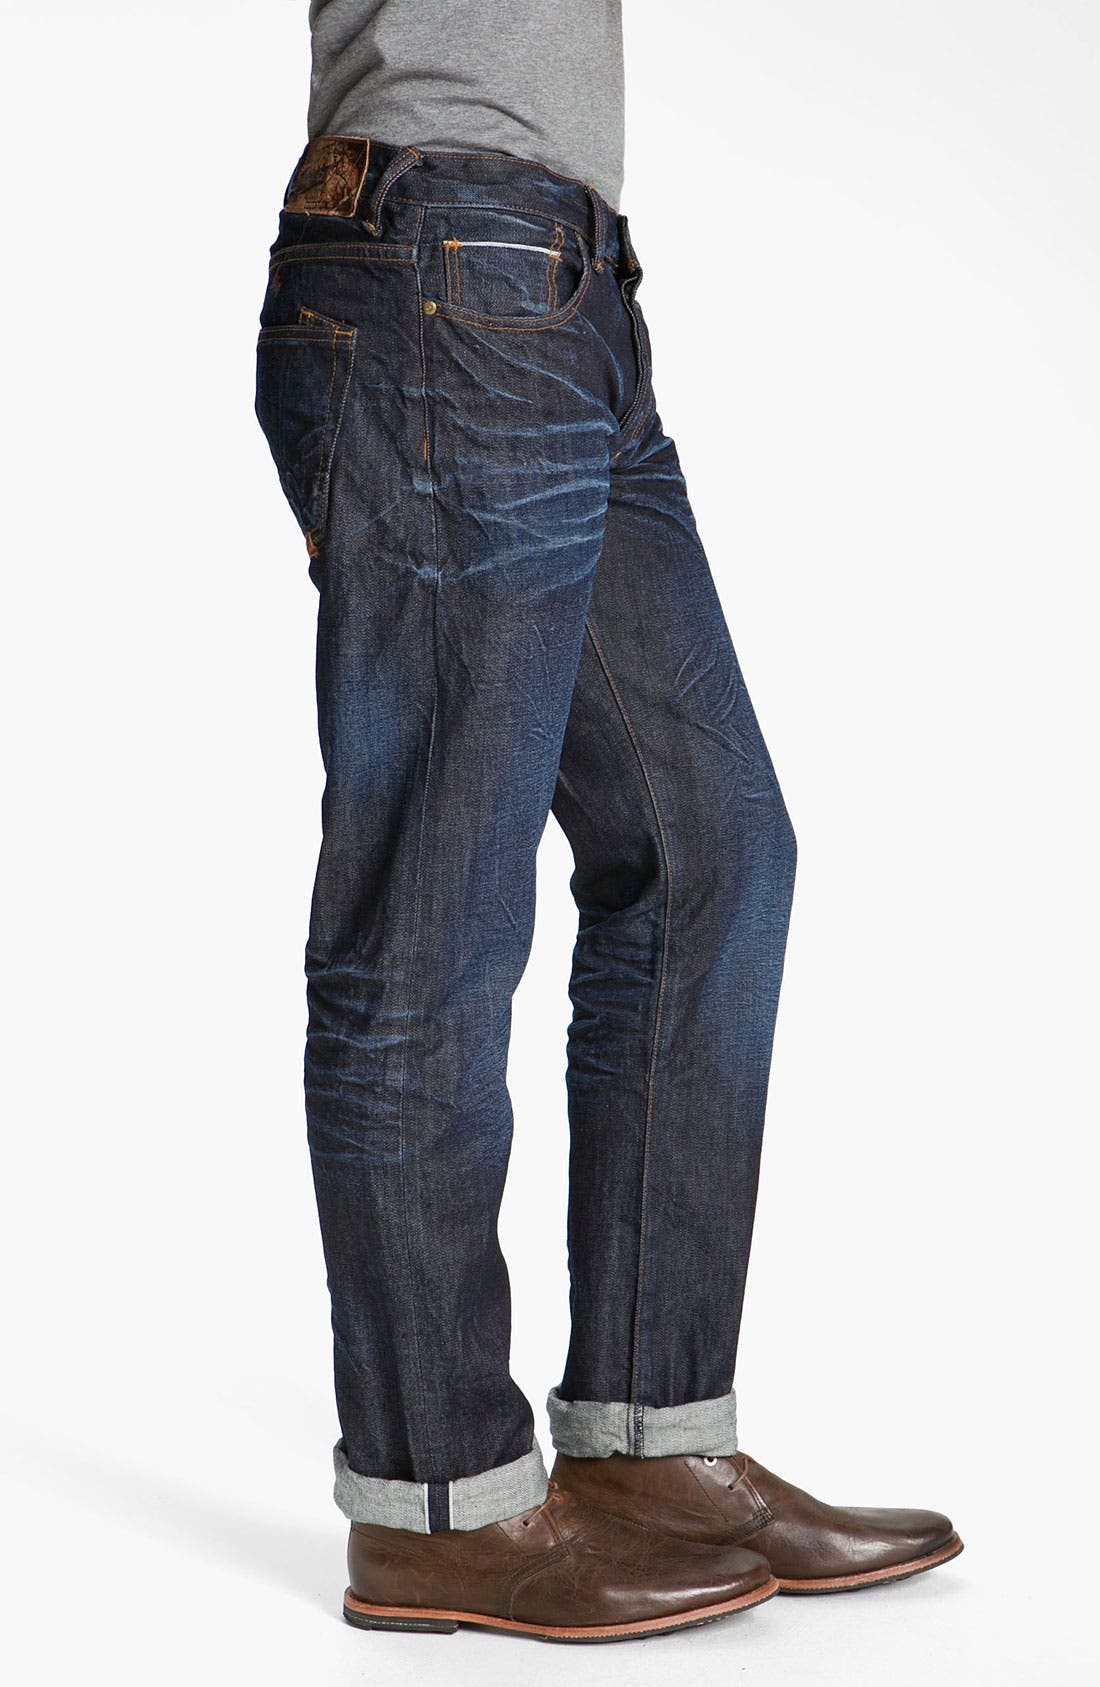 Alternate Image 3  - PRPS 'Snowy Crevasses Barracuda' Straight Leg Jeans (1 Year Wash)